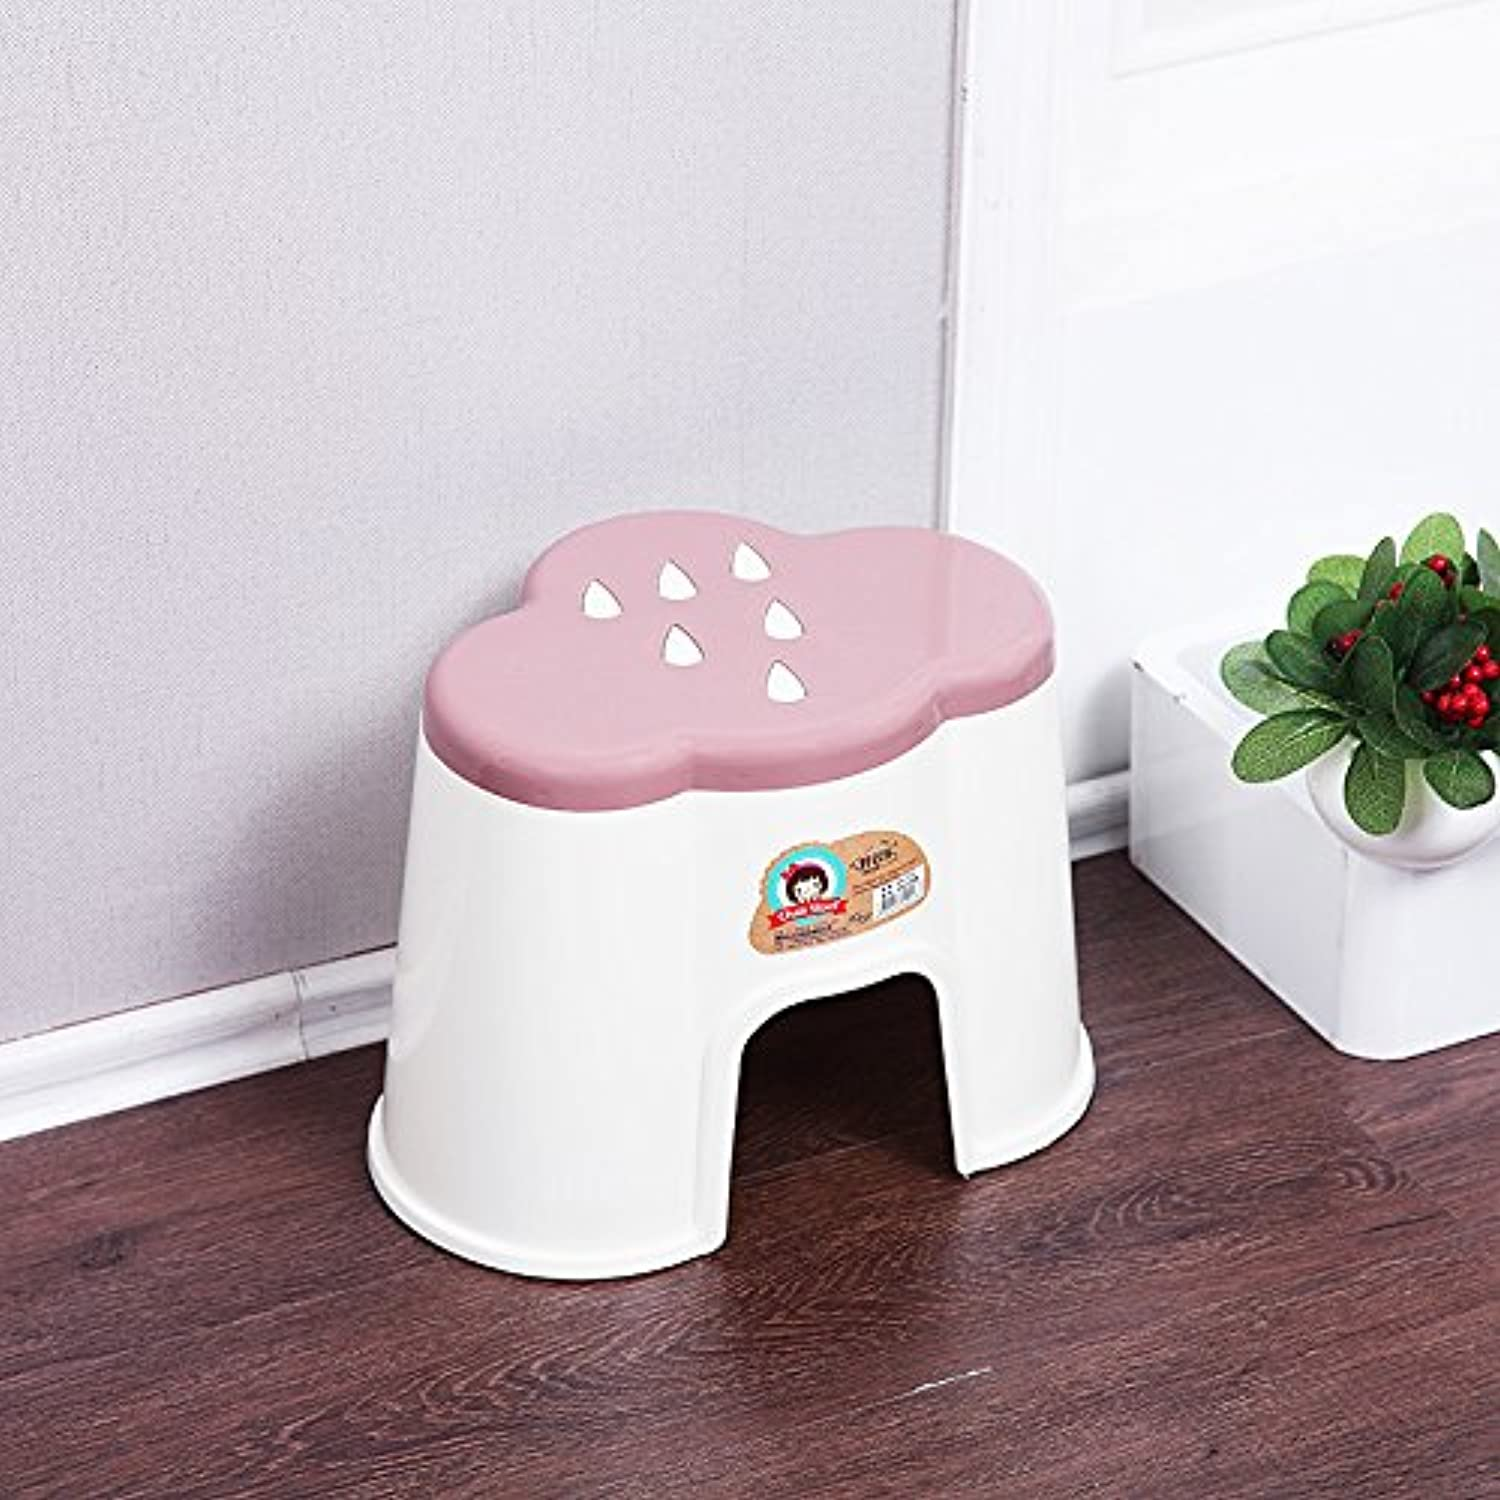 Dana Carrie Cartoon stool creative clouds-type cartoon stool thick changing shoes stool cute baby stool 5PCS, red 25×17×14CM